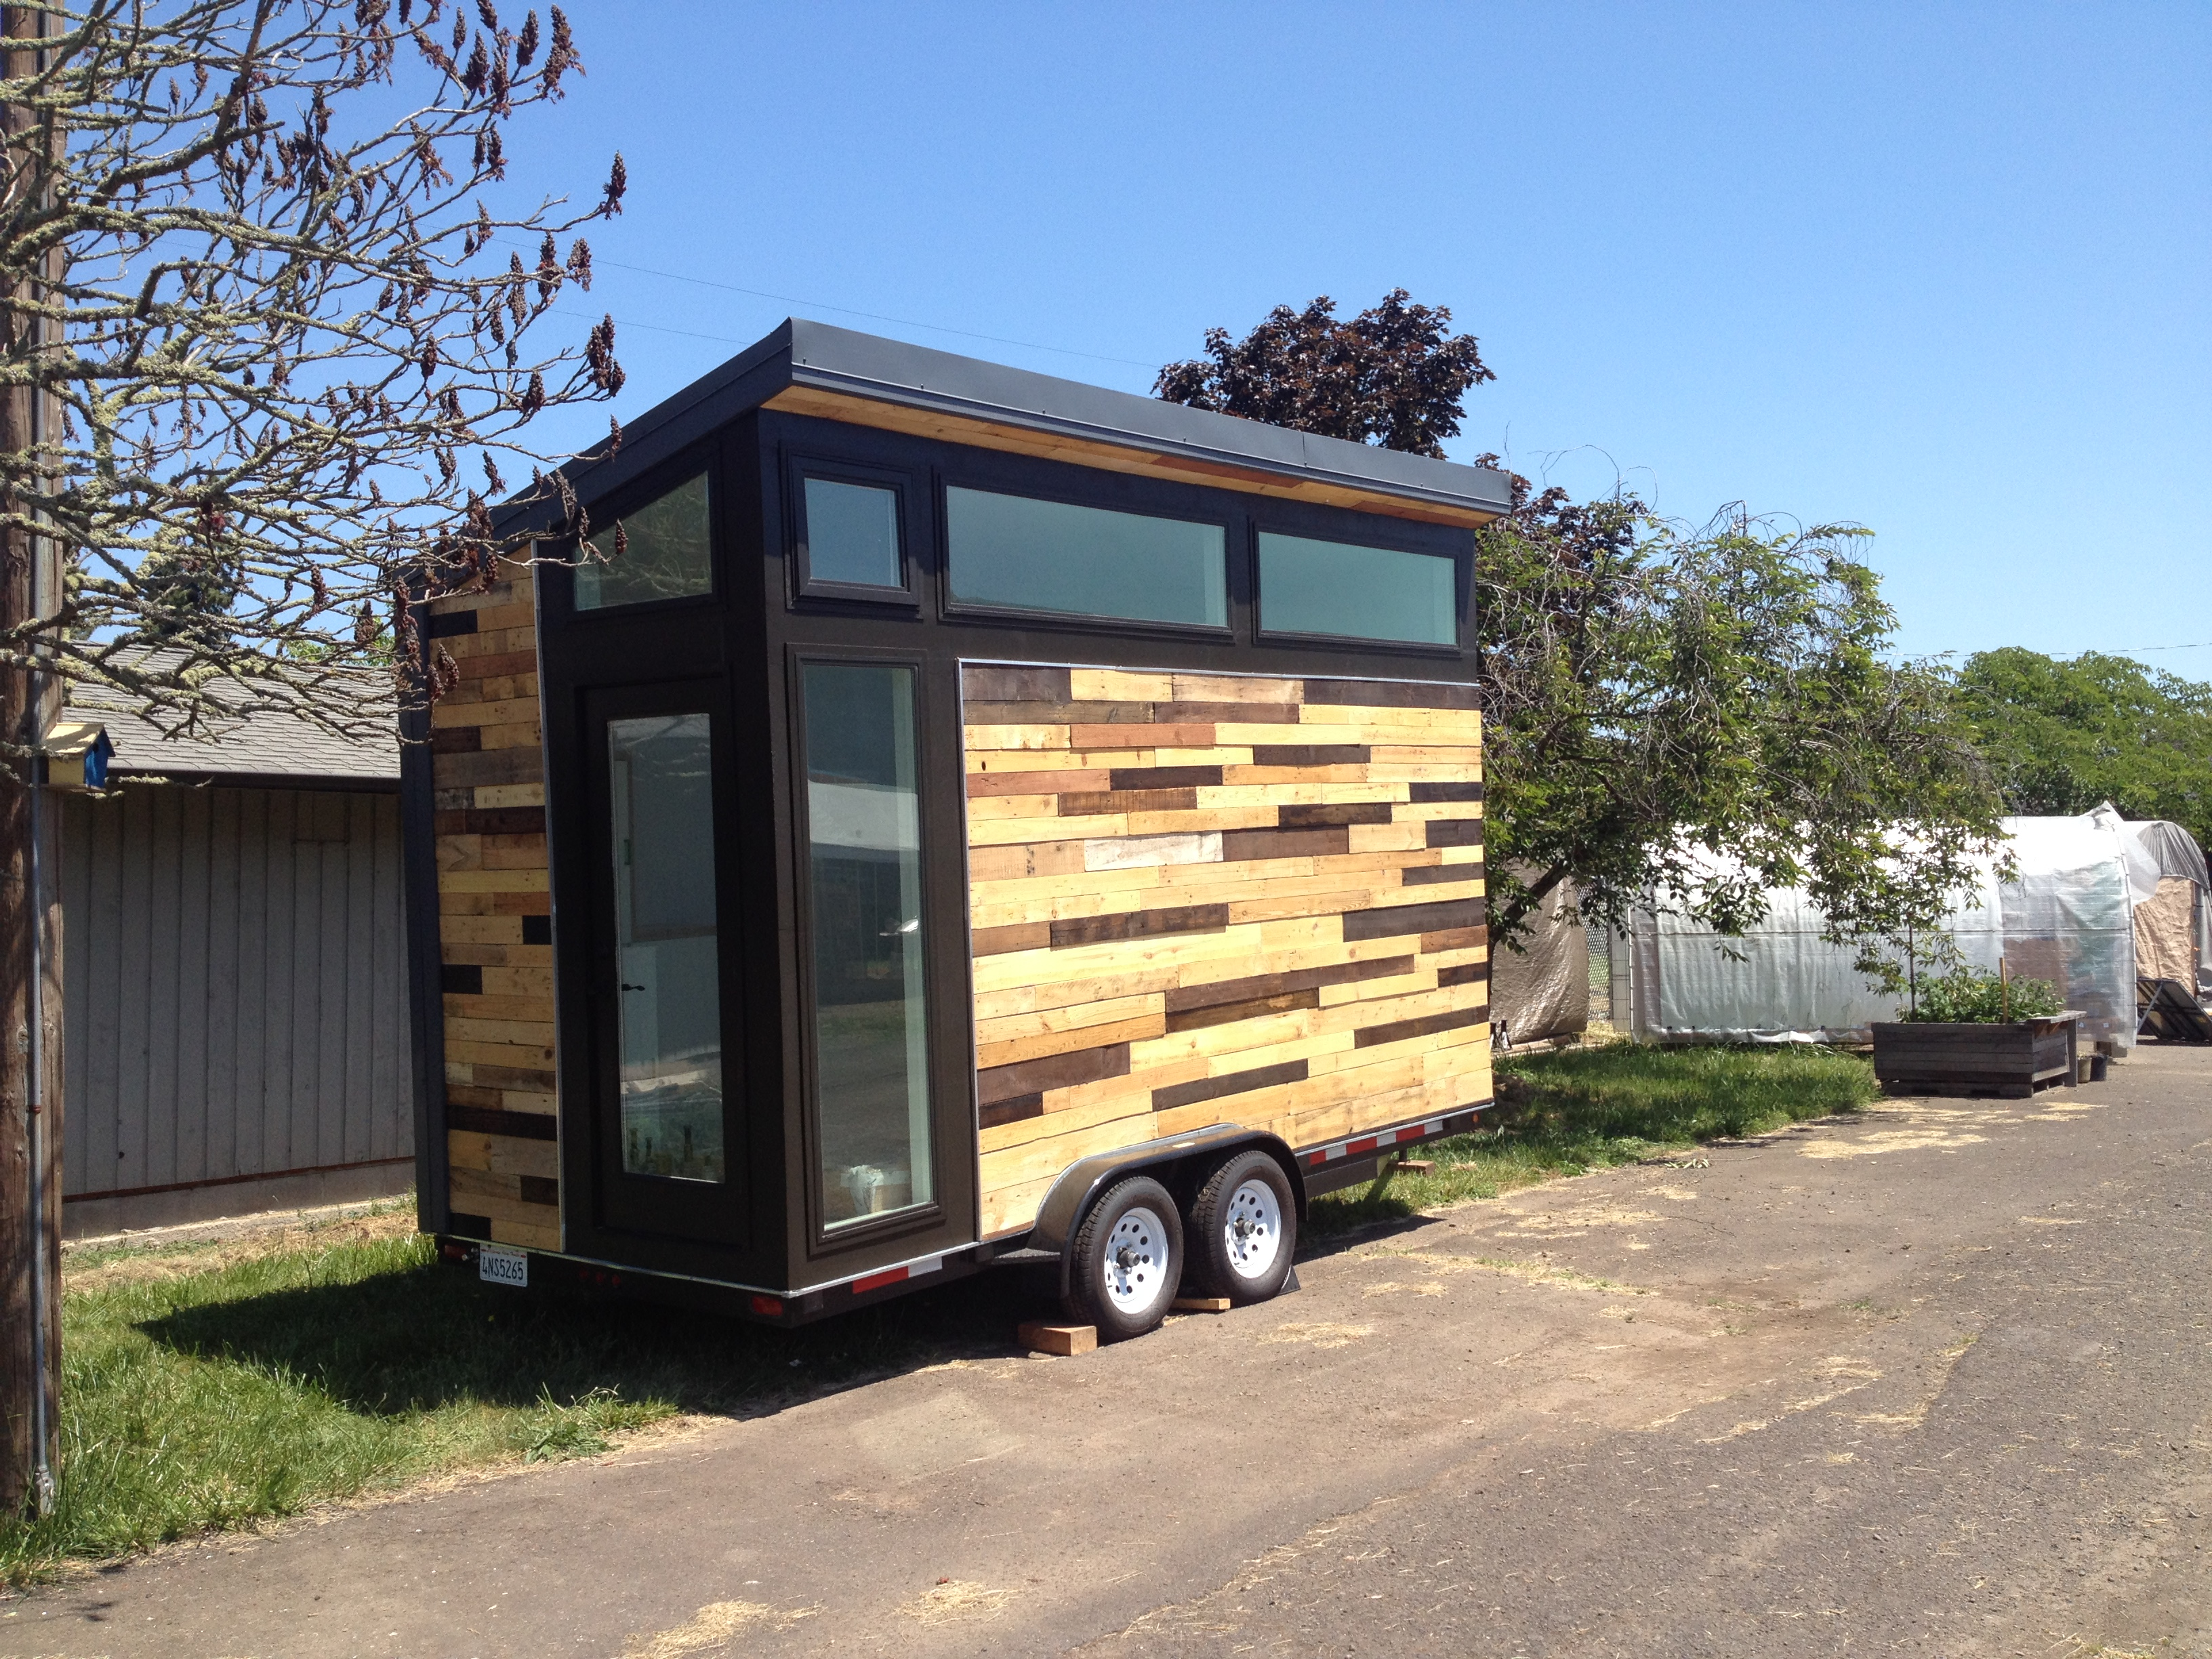 Our newest tiny house built by high school students in